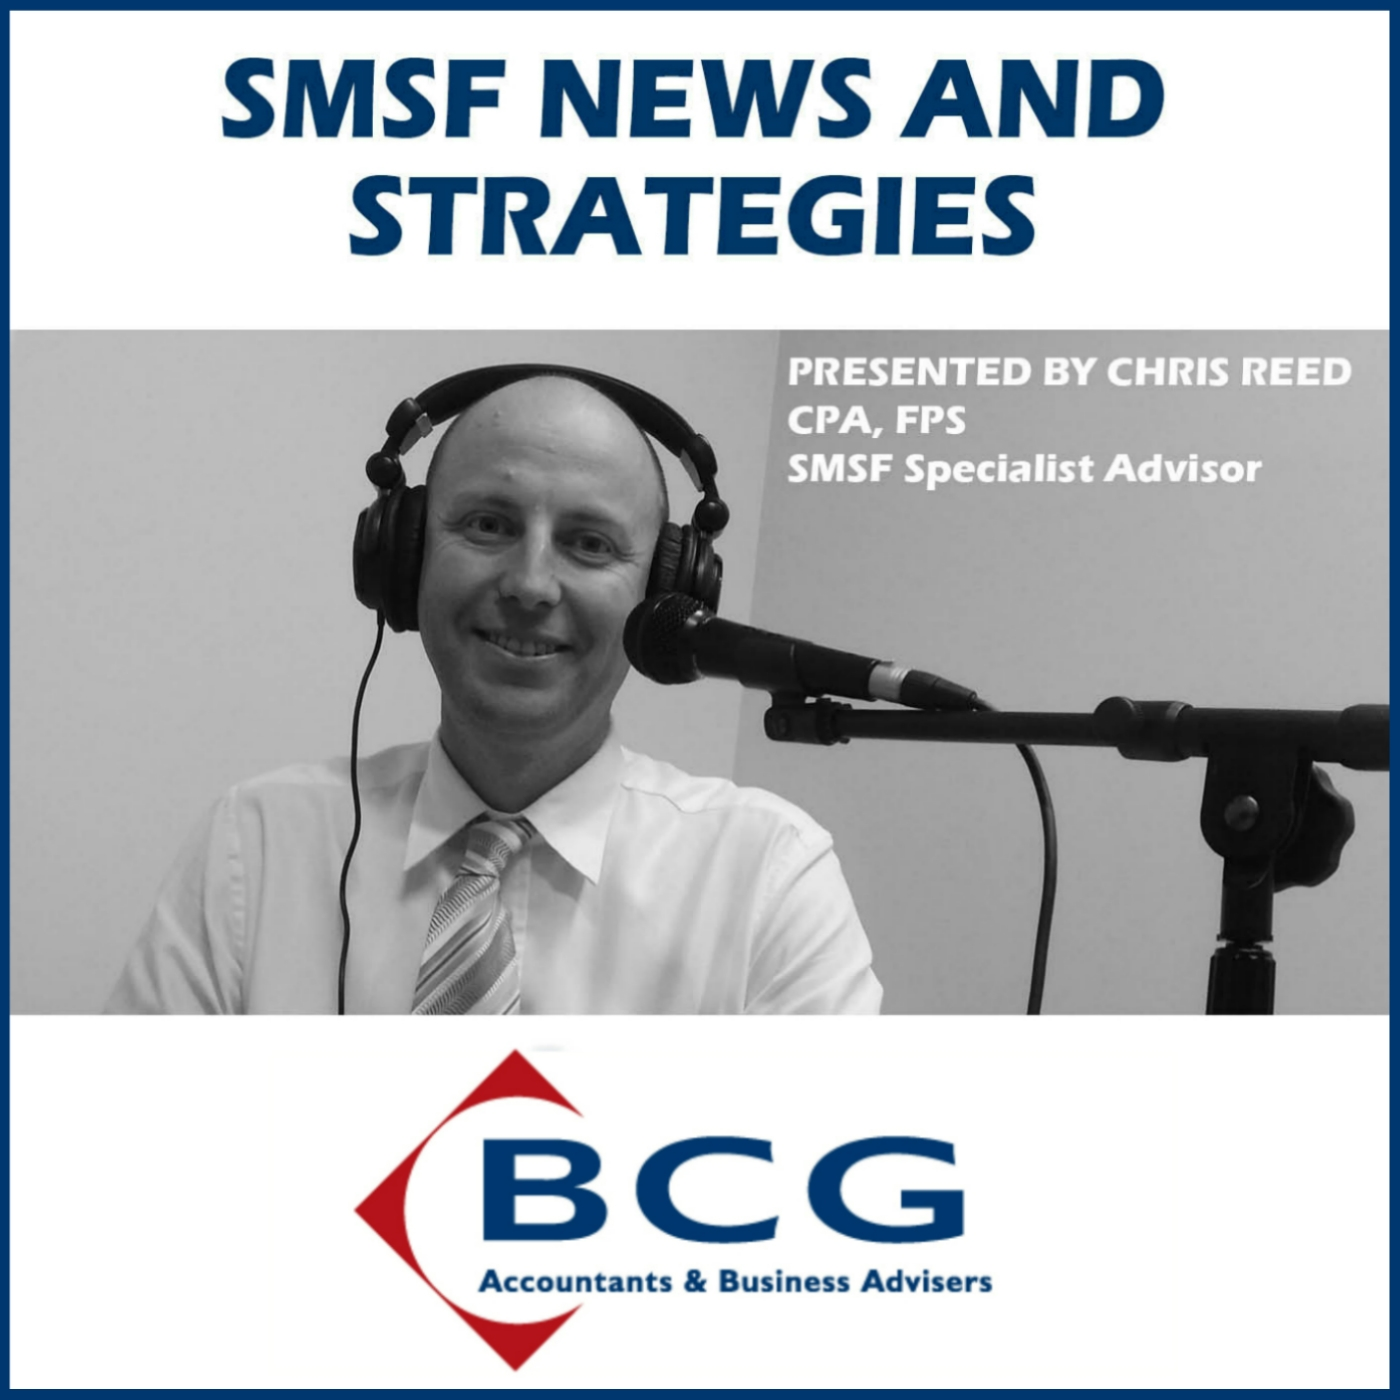 SMSF NS 029: ATO Activity Around SMSFs